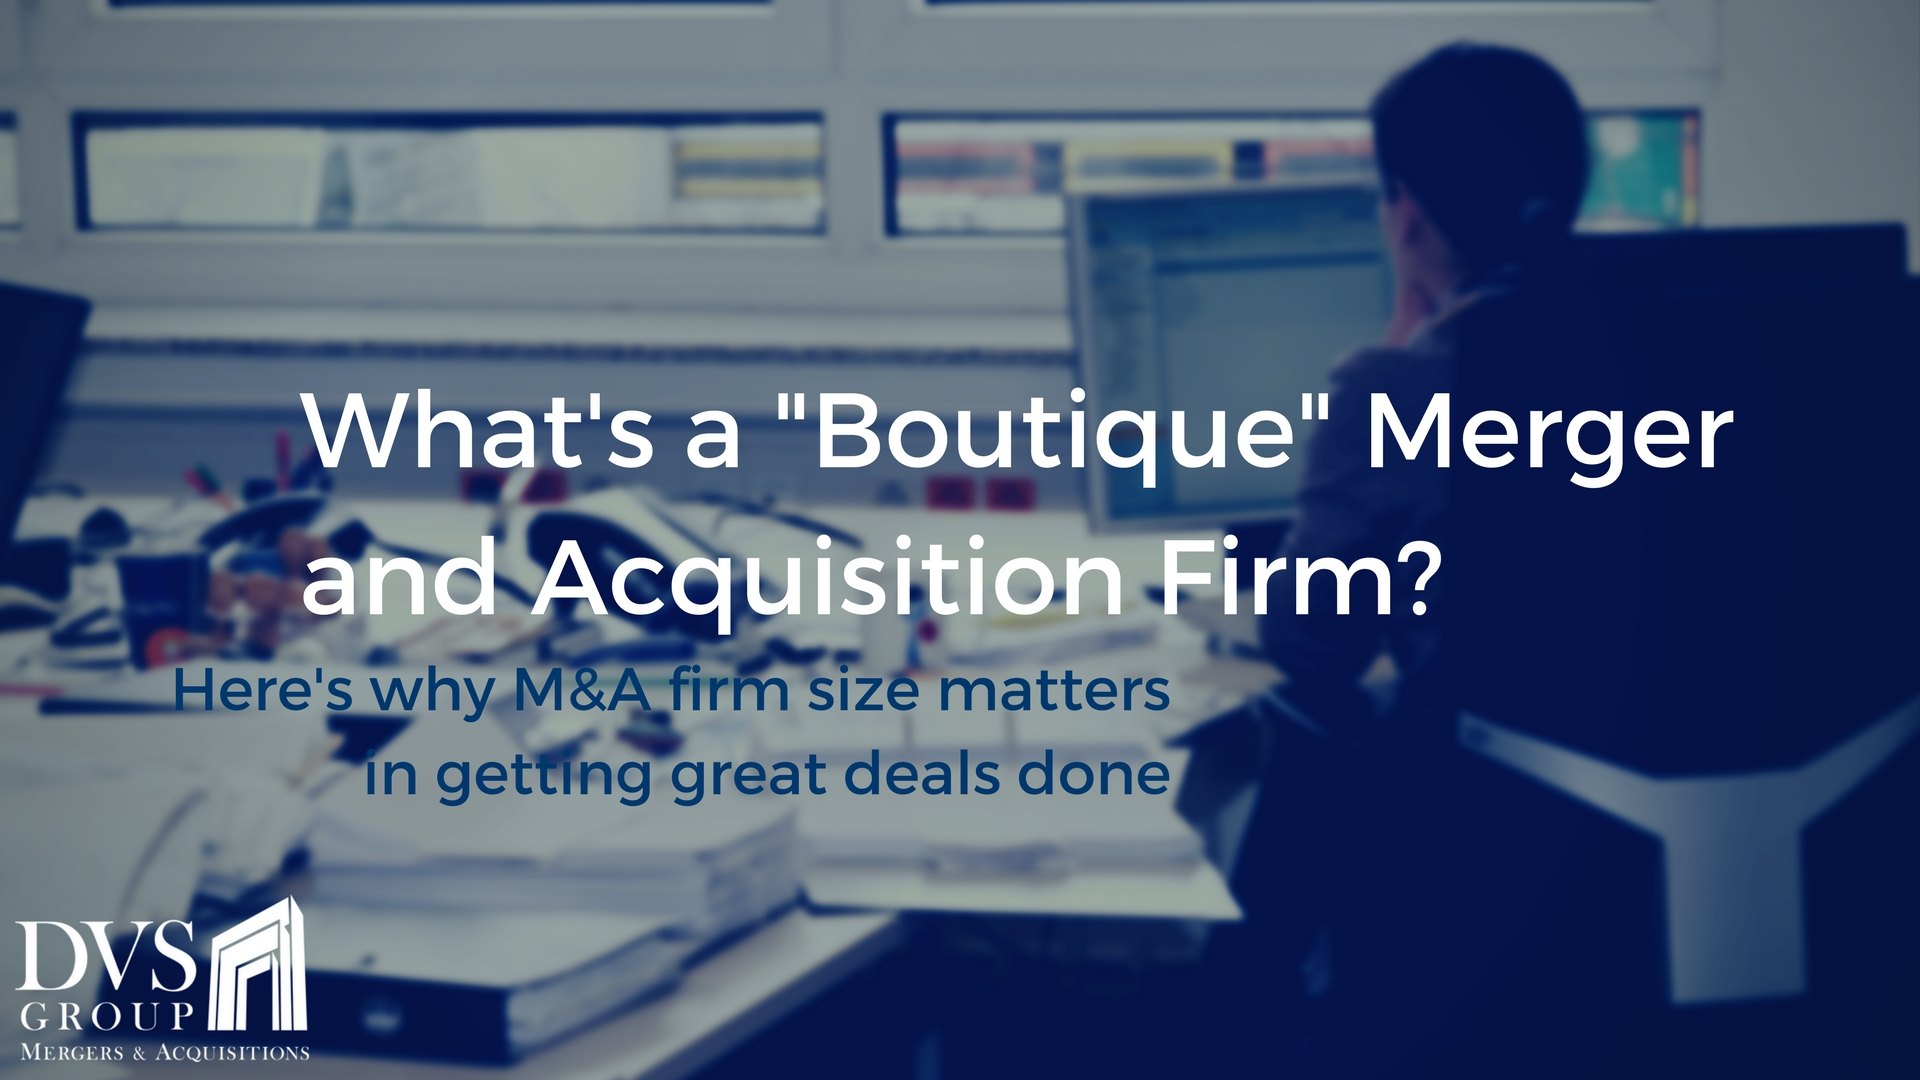 Boutique Merger and Acquisition Firm